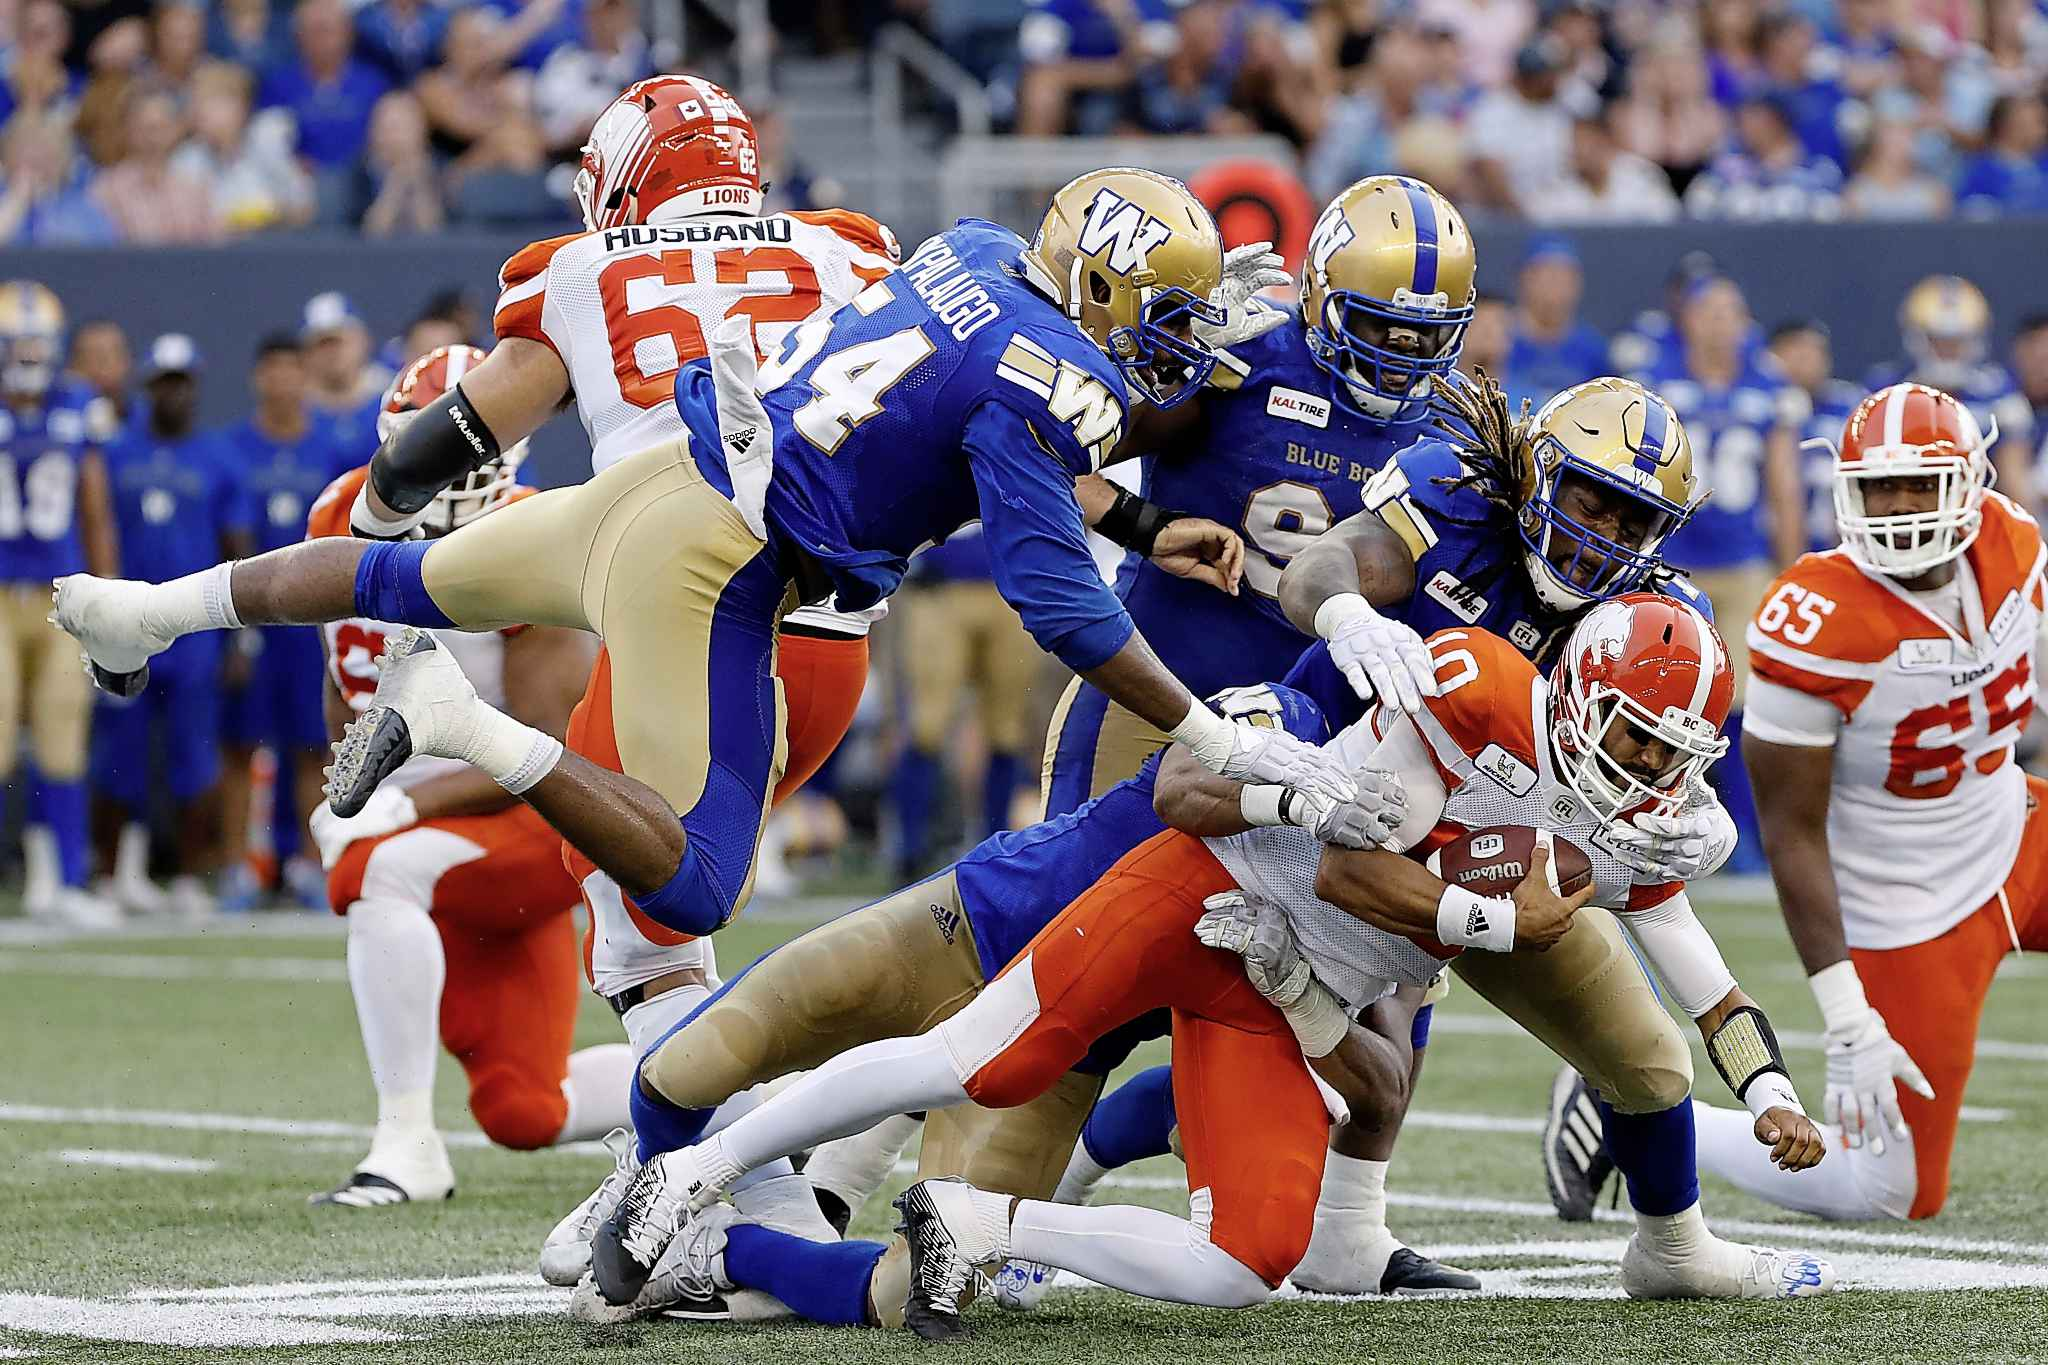 Winnipeg Blue Bombers sack BC Lions quarterback Jonathon Jennings during the first half of CFL action in Winnipeg last week. The Bombers are expecting a stiffer test from the Lions in their rematch, Saturday.